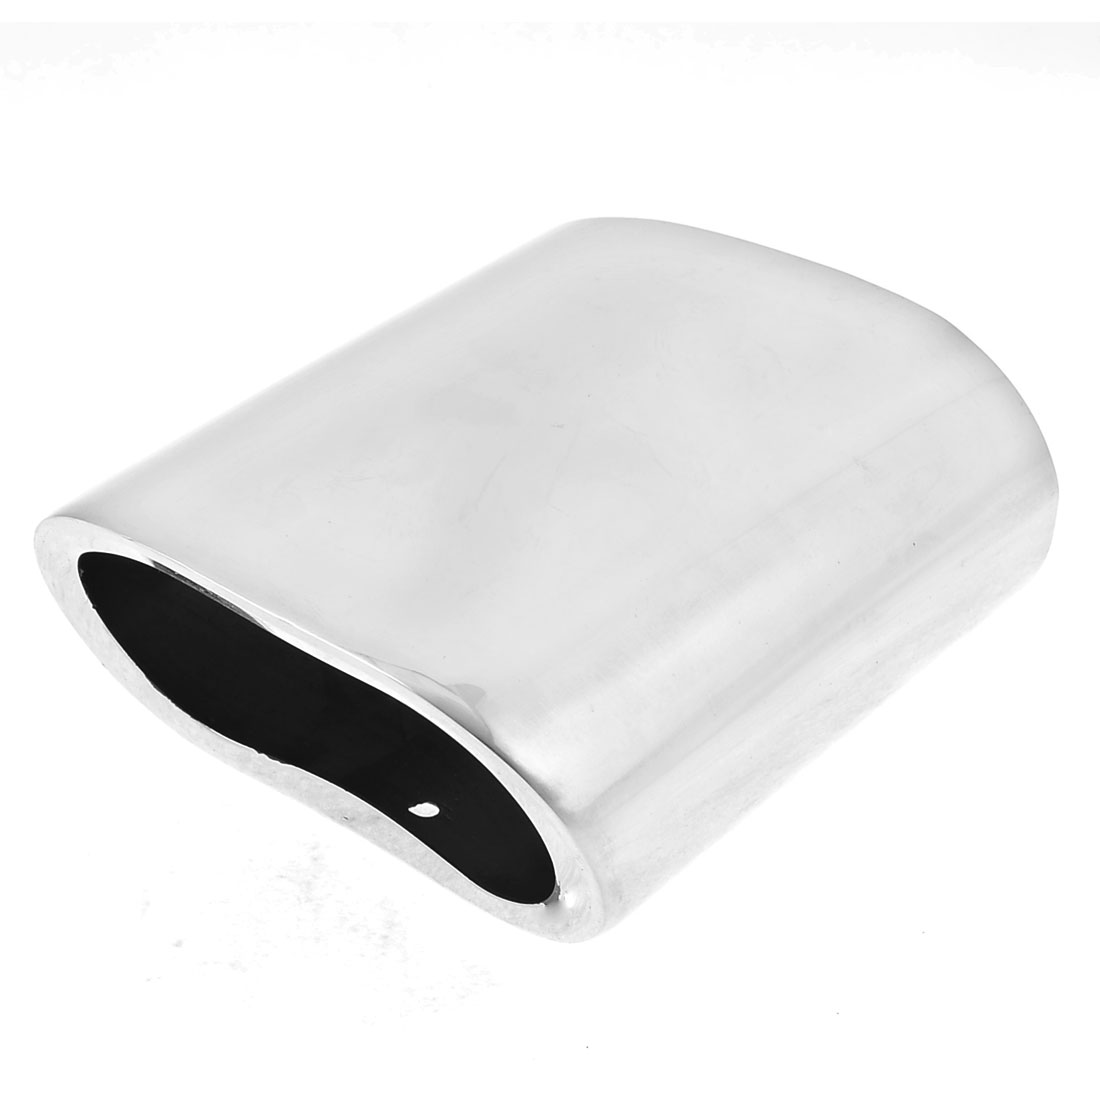 11.9 x 6.8cm Inlet Dia Stainless Steel Exhaust Muffler Tail Pipe Tip for BMW318